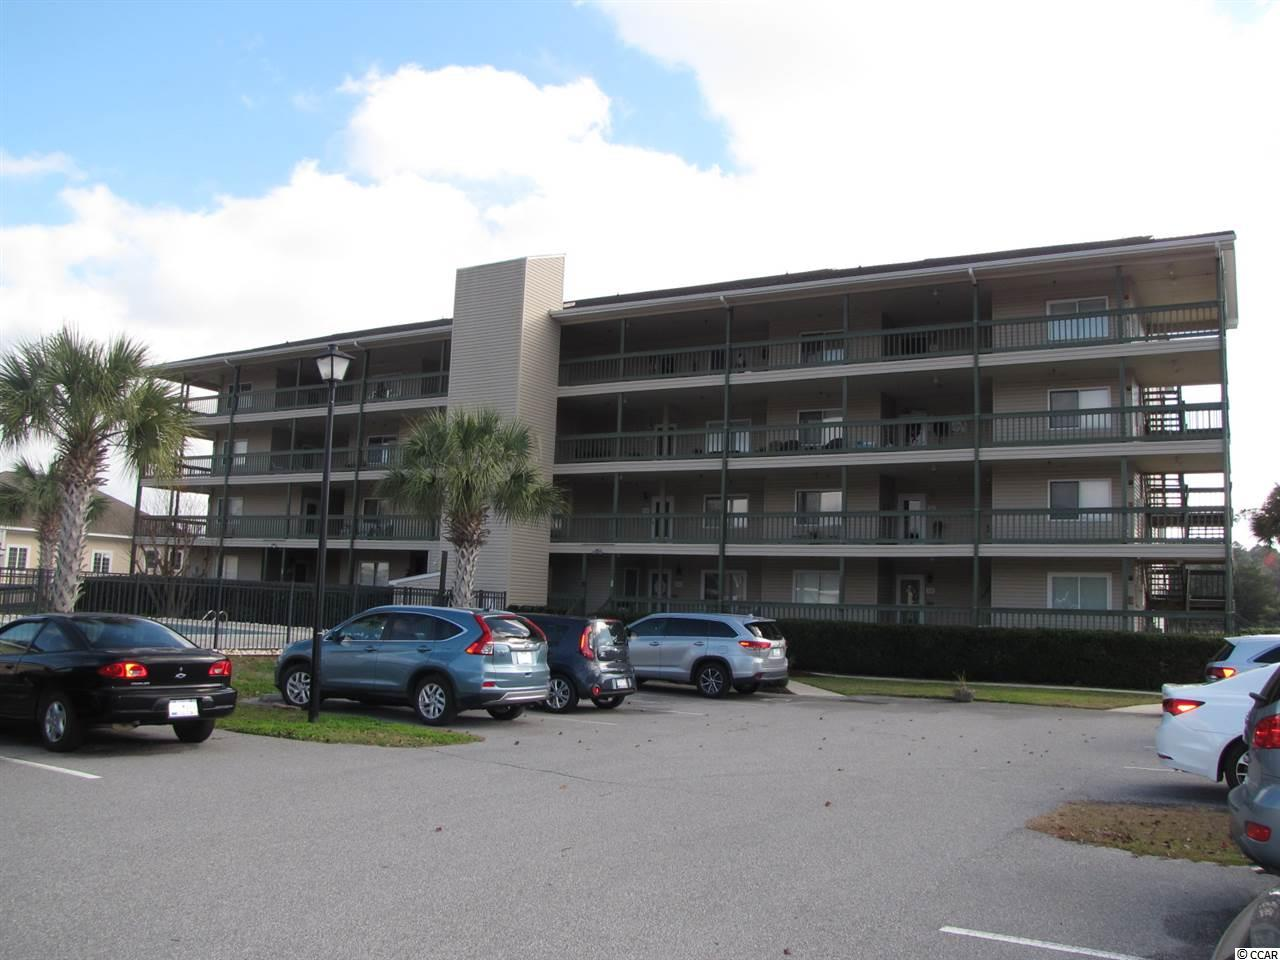 The view of the intracoastal Waterway is one of the best from this  meticulously maintained  renovated condo located in Kingsport community. Lovely 1 bedroom, 2 full baths condo 1st floor end unit, only used as second home. A truly turn key condo, bedroom has ceiling fan, carpet, electric wall fireplace, and walk in closet.  The master bath has walk in shower with glass door, upgrade sink.  In hallway you will find the washer/dryer combination.  Main bathroom has tub/shower, upgrade sink, fixtures and lights.  Kitchen has granite countertops, all stainless steel appliances ( refrigerator, dishwasher, range, microwave), garbage disposal, backsplash, pantry, breakfast bar.  Living room area has television stand with electric fireplace,  designer sleeper sofa and windows for natural light.  Lovely sliders with blinds between glass leading to the lovely deck with  nice table & chairs.  What a view from the deck of the waterway!!   Kingsport is a small complex with 24 units, community pool and nice deck on waterway!!  Location is the best close to Little River, Cherry Grove and all North Myrtle Beach has to offer!!